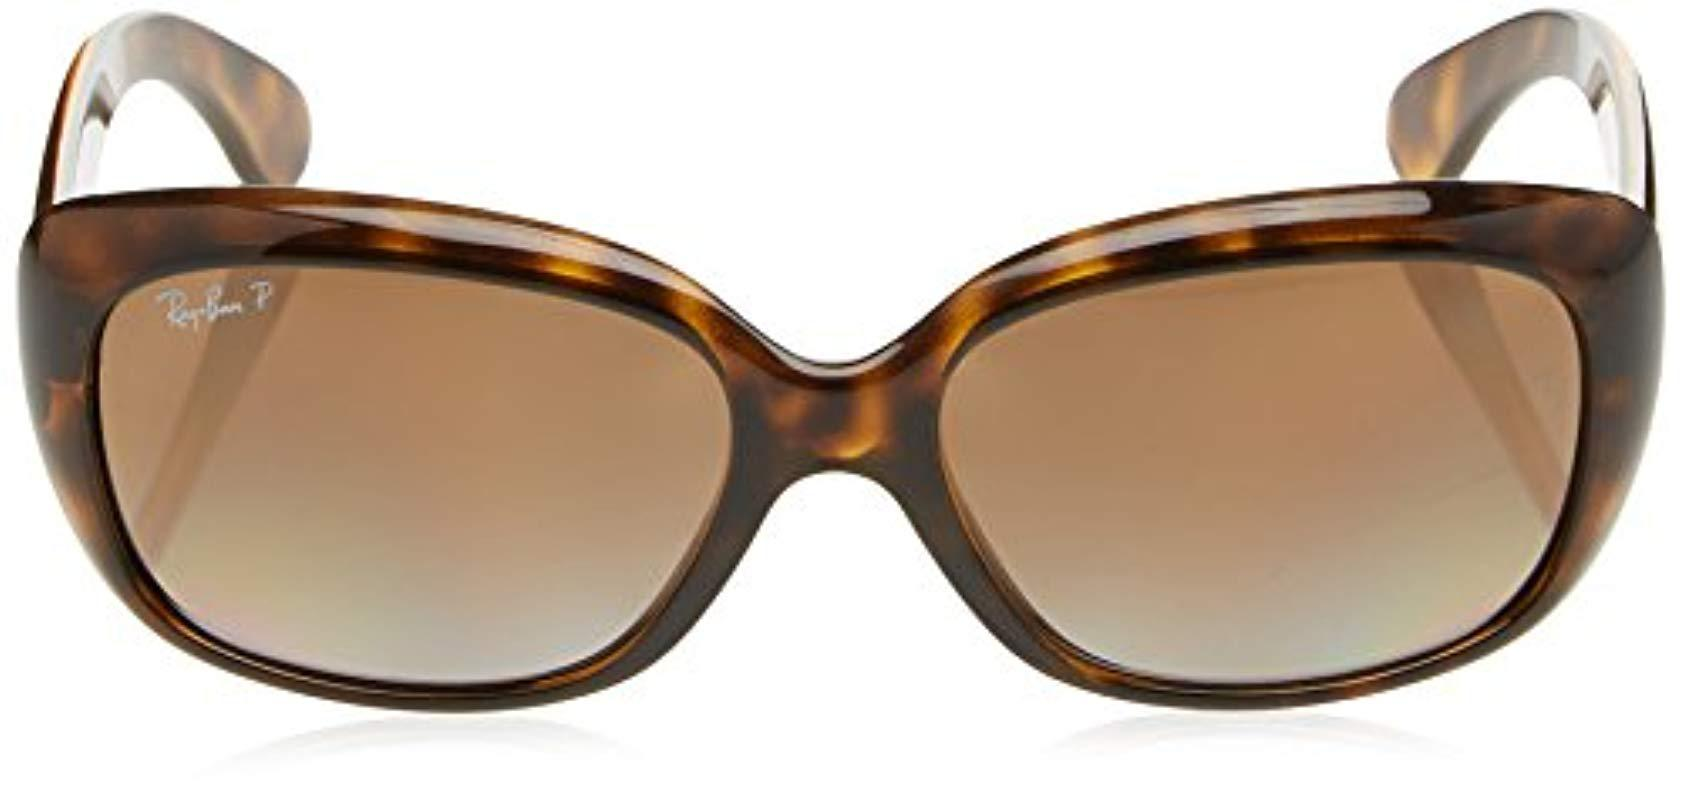 46dc272a1f9 Ray-Ban - Brown Jackie Ohh Polarized Rectangular Sunglasses Light Havana 58  Mm - Lyst. View fullscreen